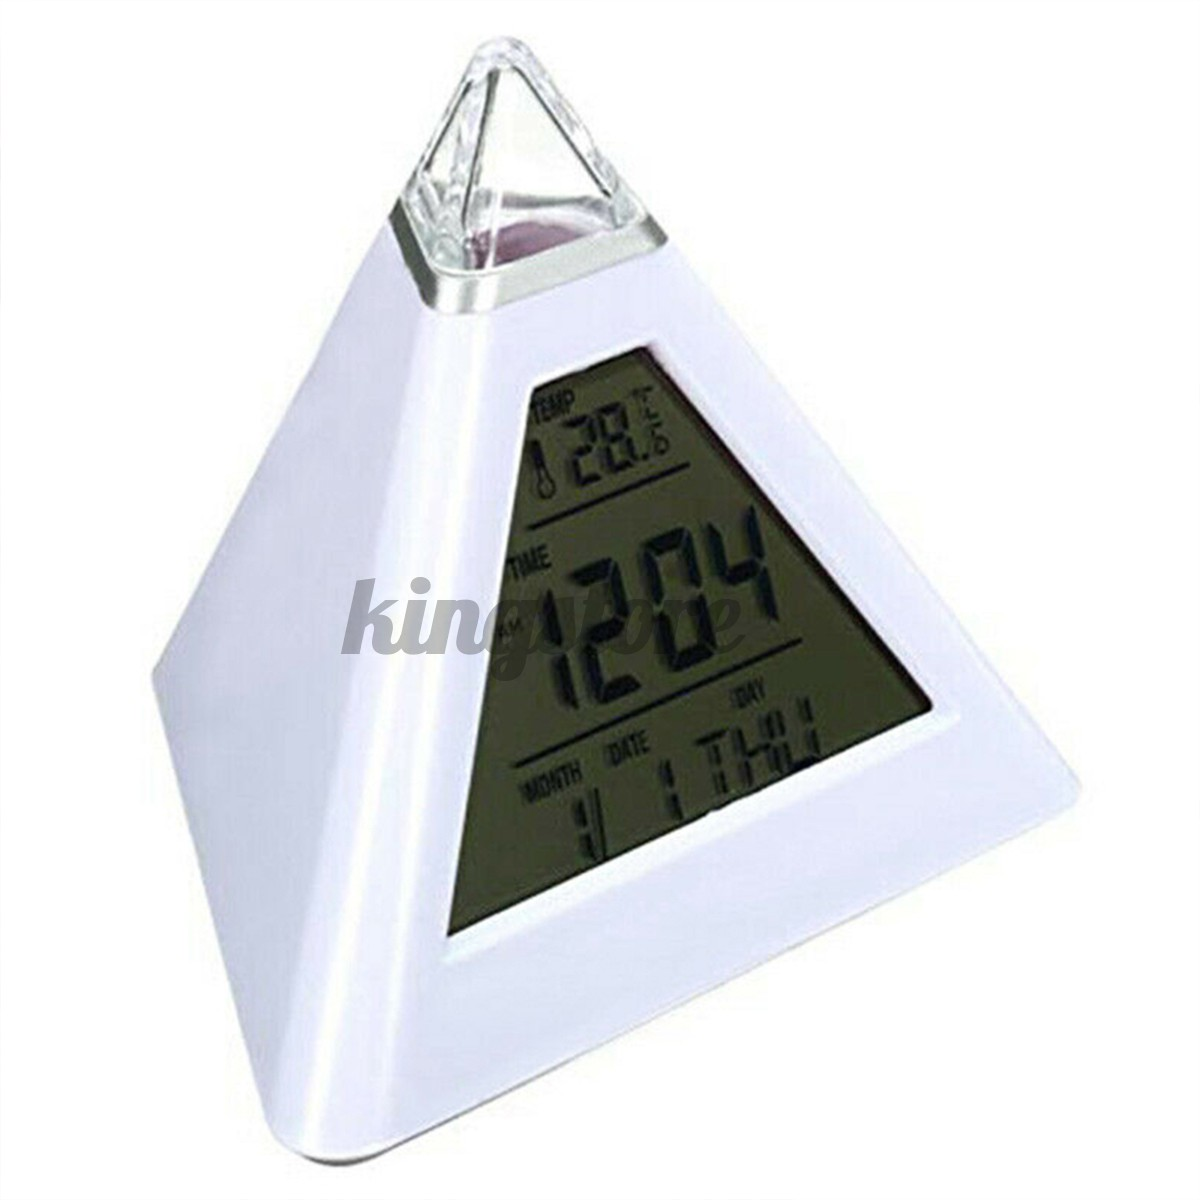 3.9x3.9x4in LCD 7 Colour Changing Triangle Digital Alarm Clock Night Light Bedside Desk Lamp